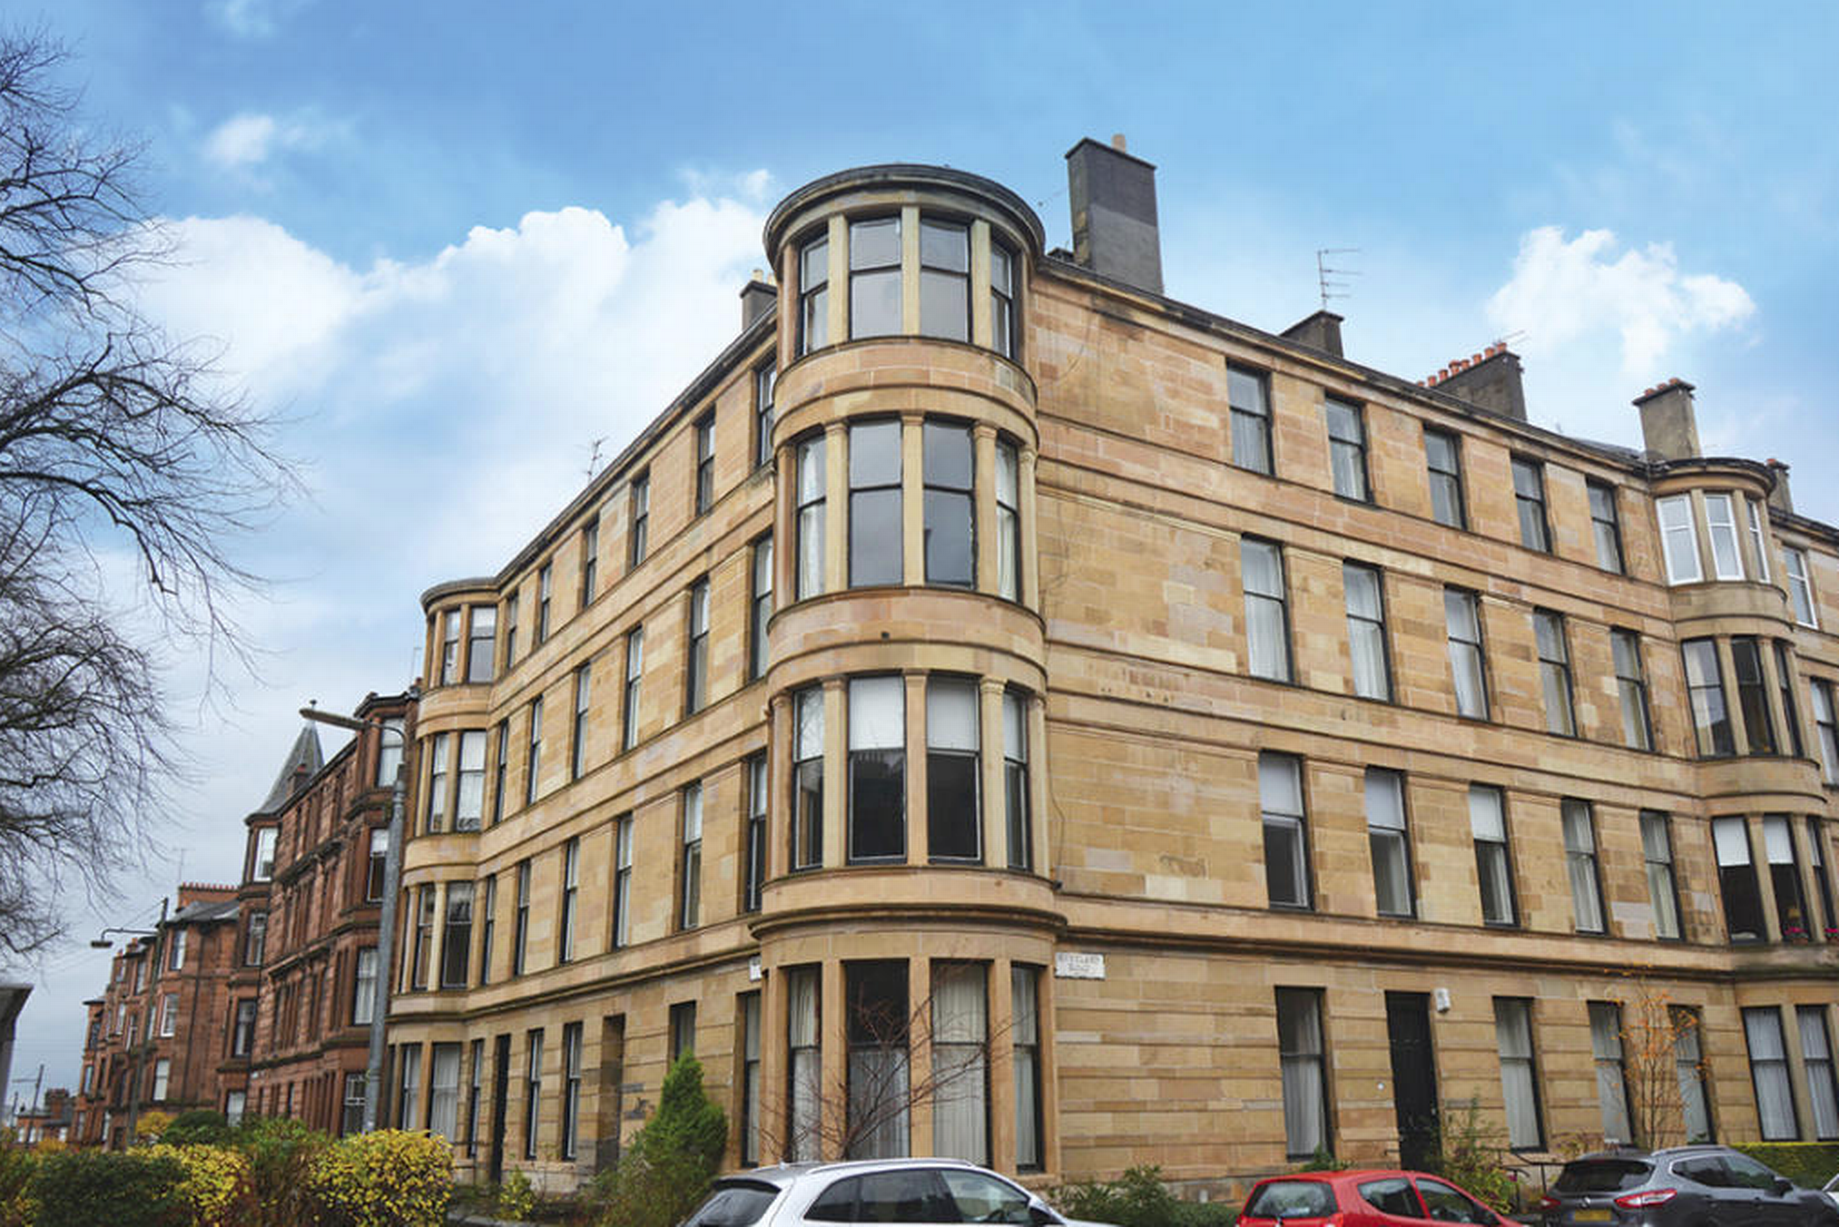 Stunning five-bedroom flat in Hyndland up for sale ...